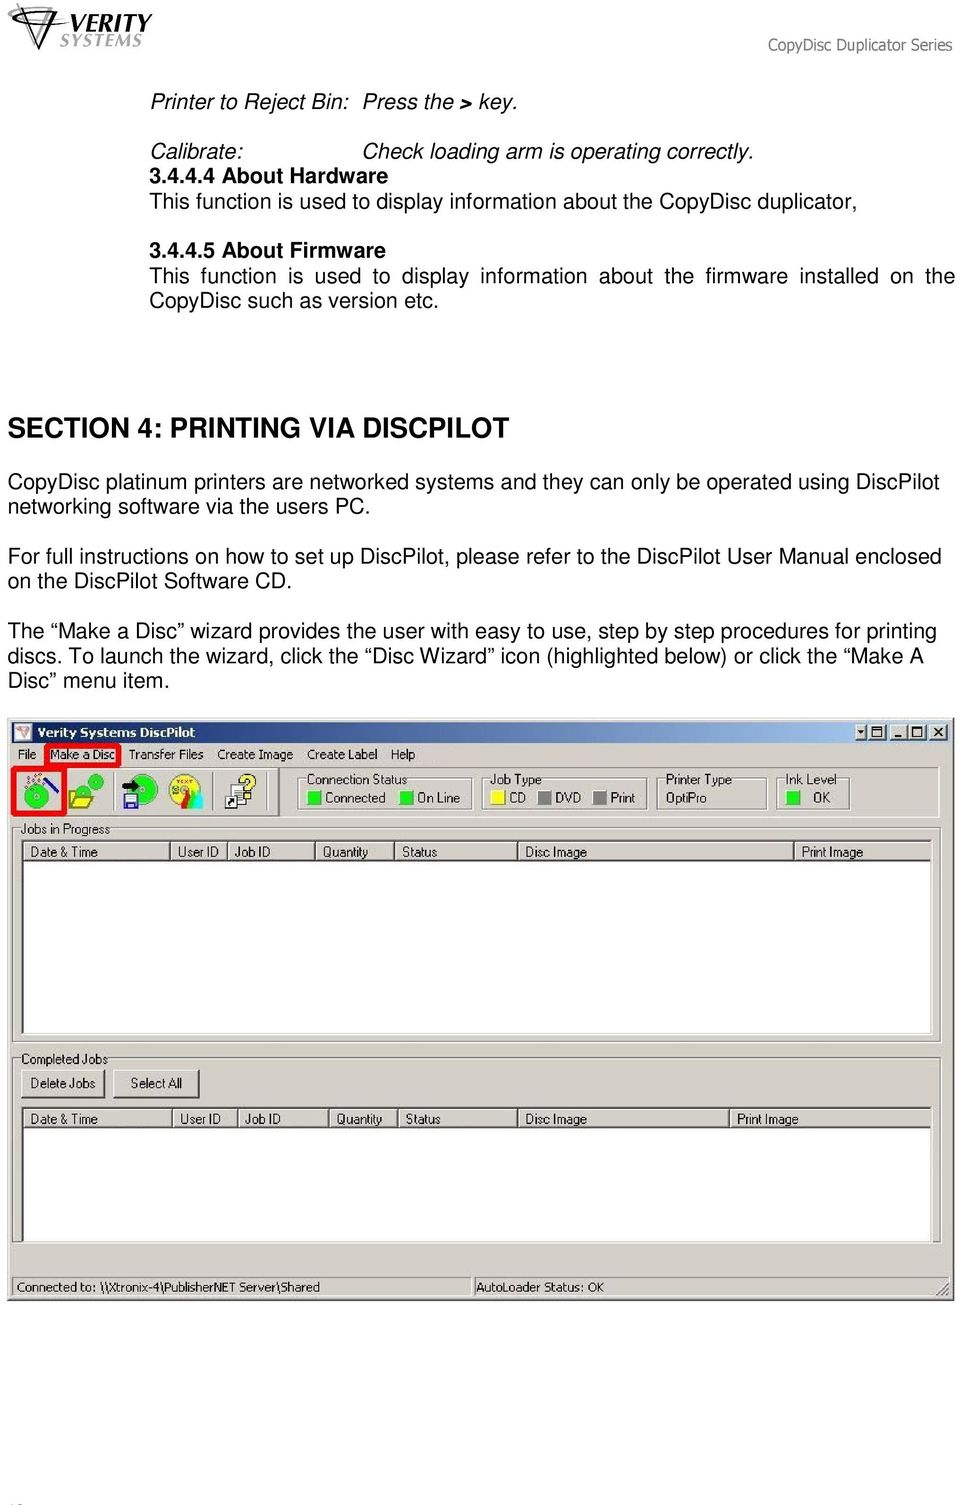 SECTION 4: PRINTING VIA DISCPILOT CopyDisc platinum printers are networked systems and they can only be operated using DiscPilot networking software via the users PC.